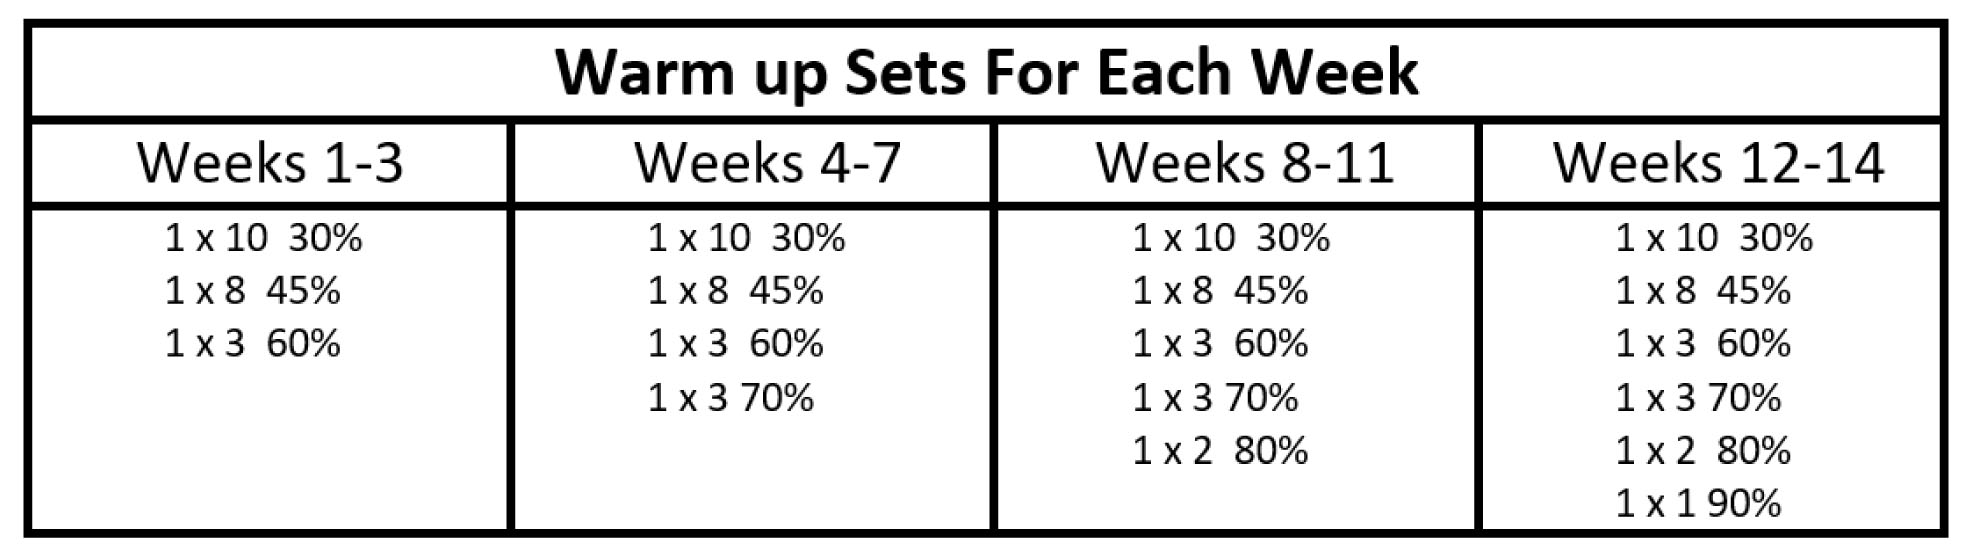 self calculating spreadsheet for 14 week linear periodization